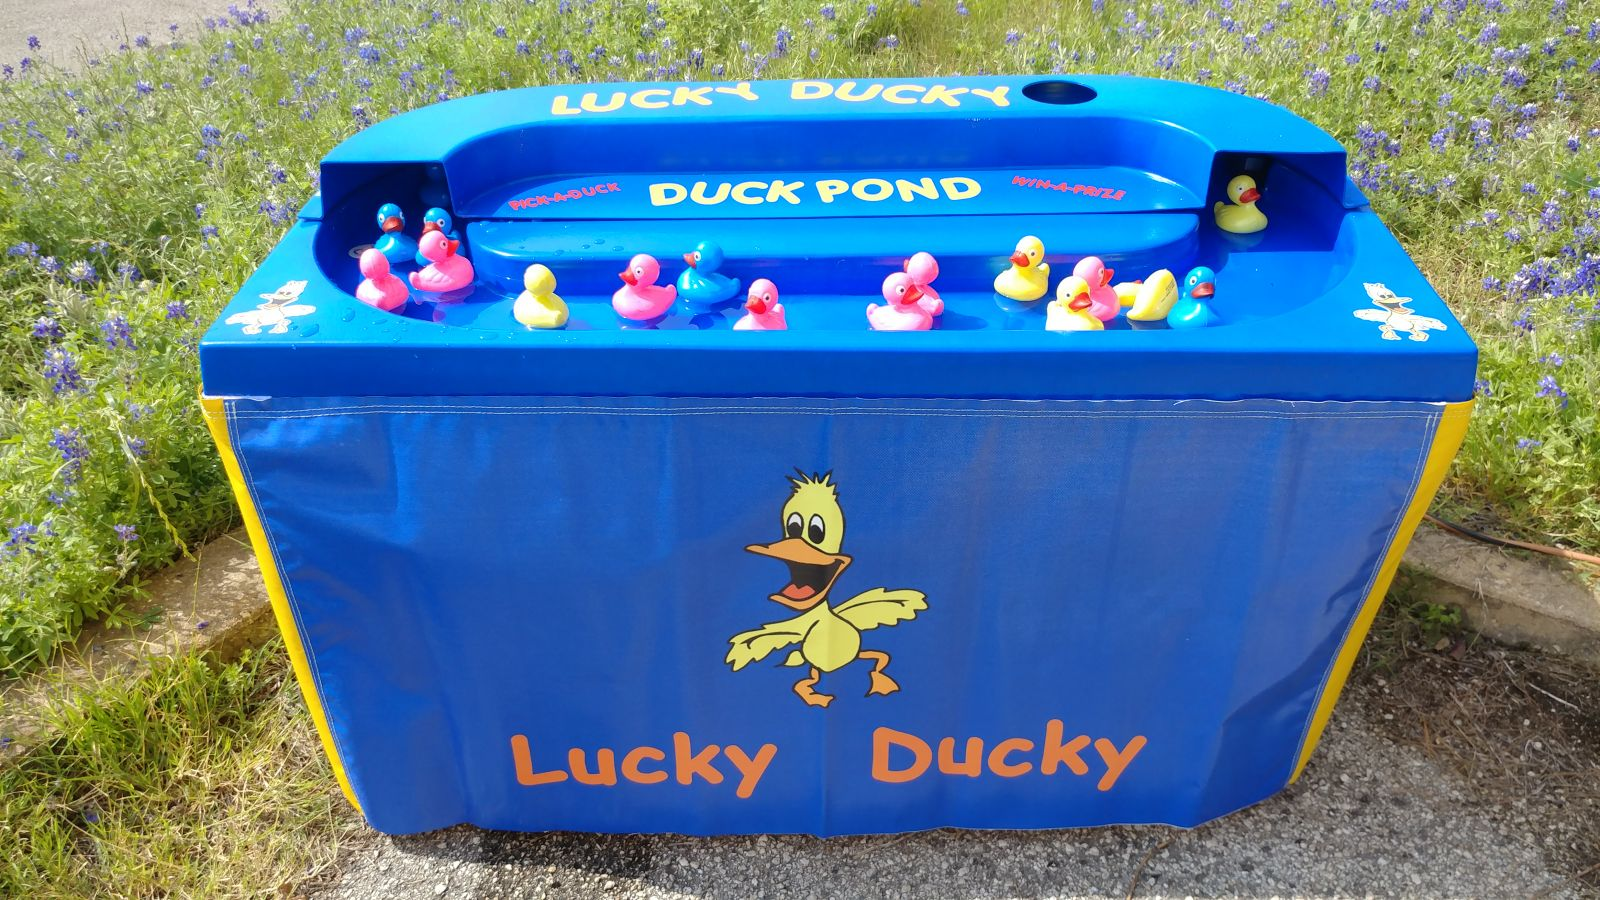 duck pond midway carnival game